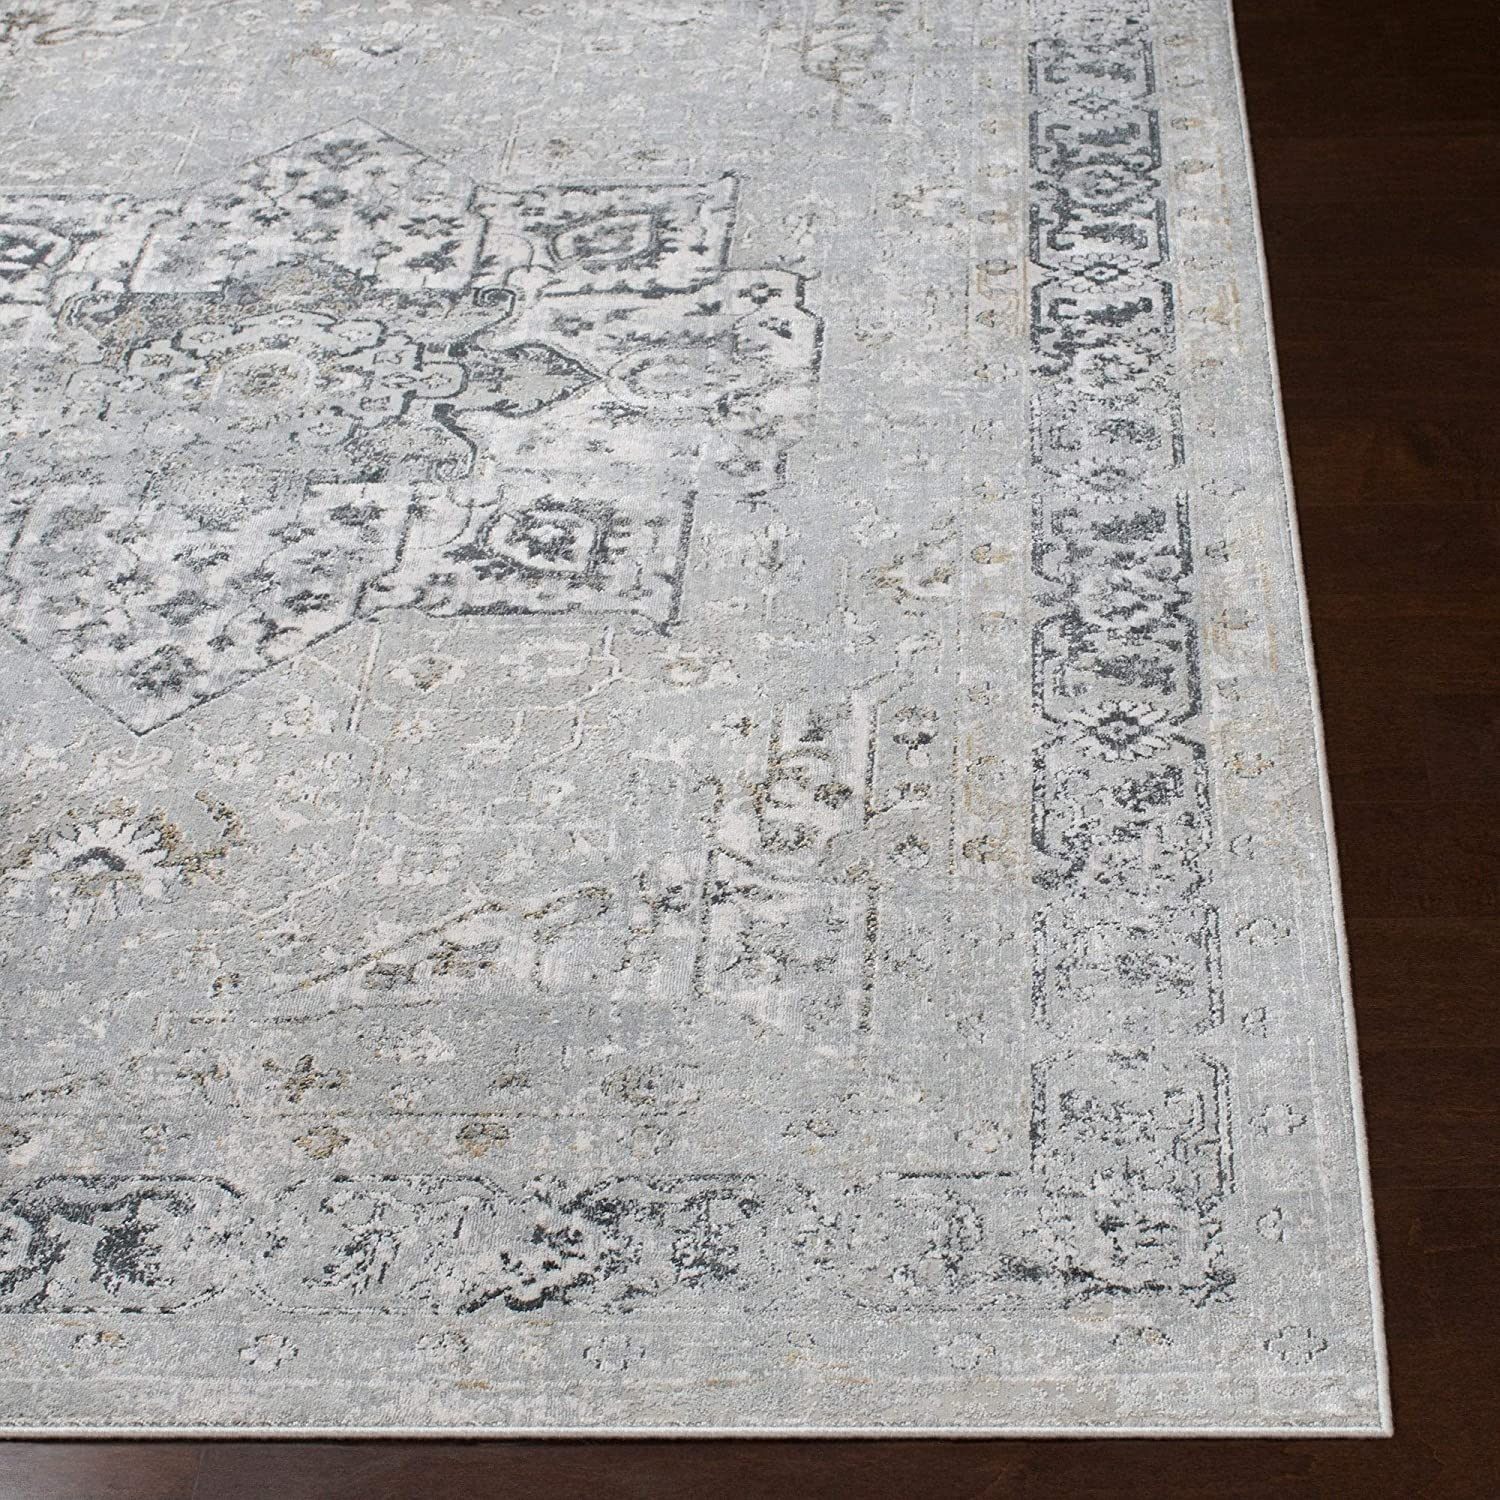 "MISC Traditional Area Rug 2'7"" X 7'7"" Runner Brown Grey White Polyester Viscose Latex Free Pet Friendly Stain Resistant"